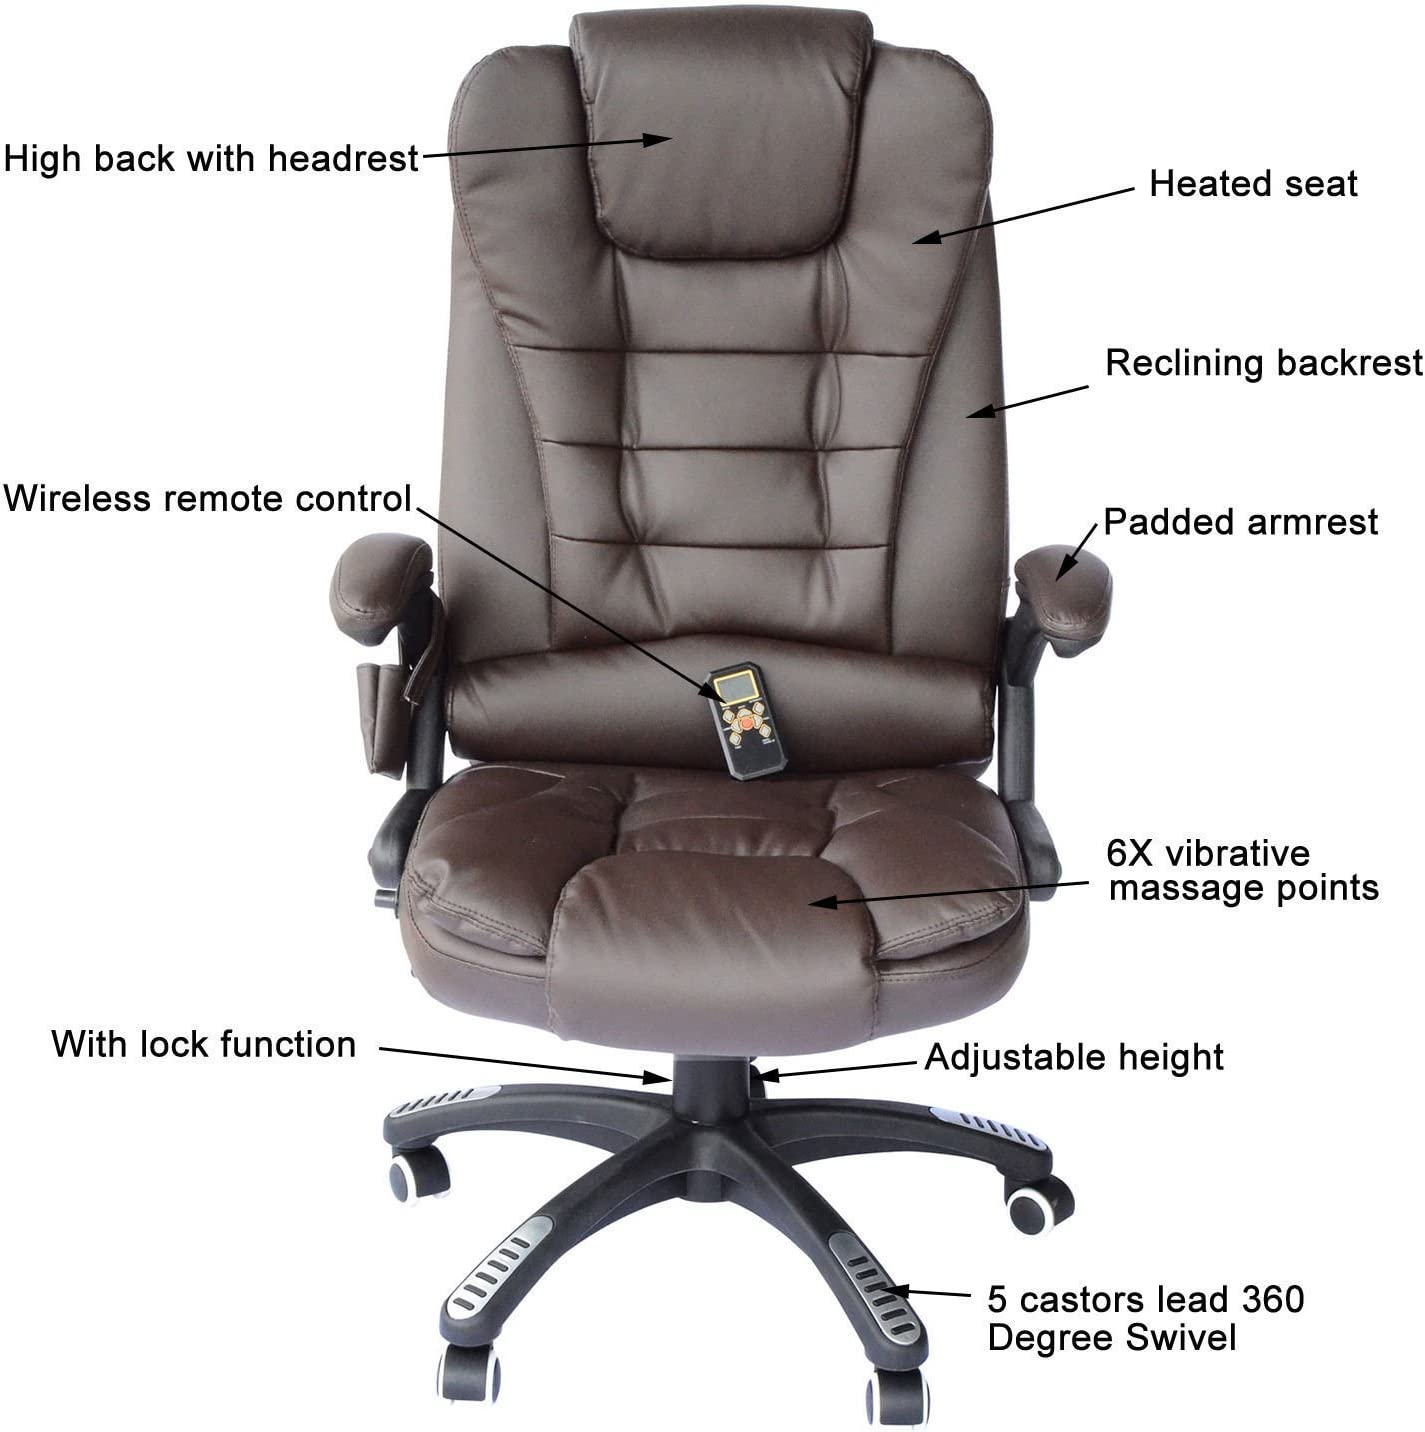 Homcom Adjustable Heated Ergonomic Massage Office Chair Swivel Vibrating High Back Leather Executive Chair Home Office